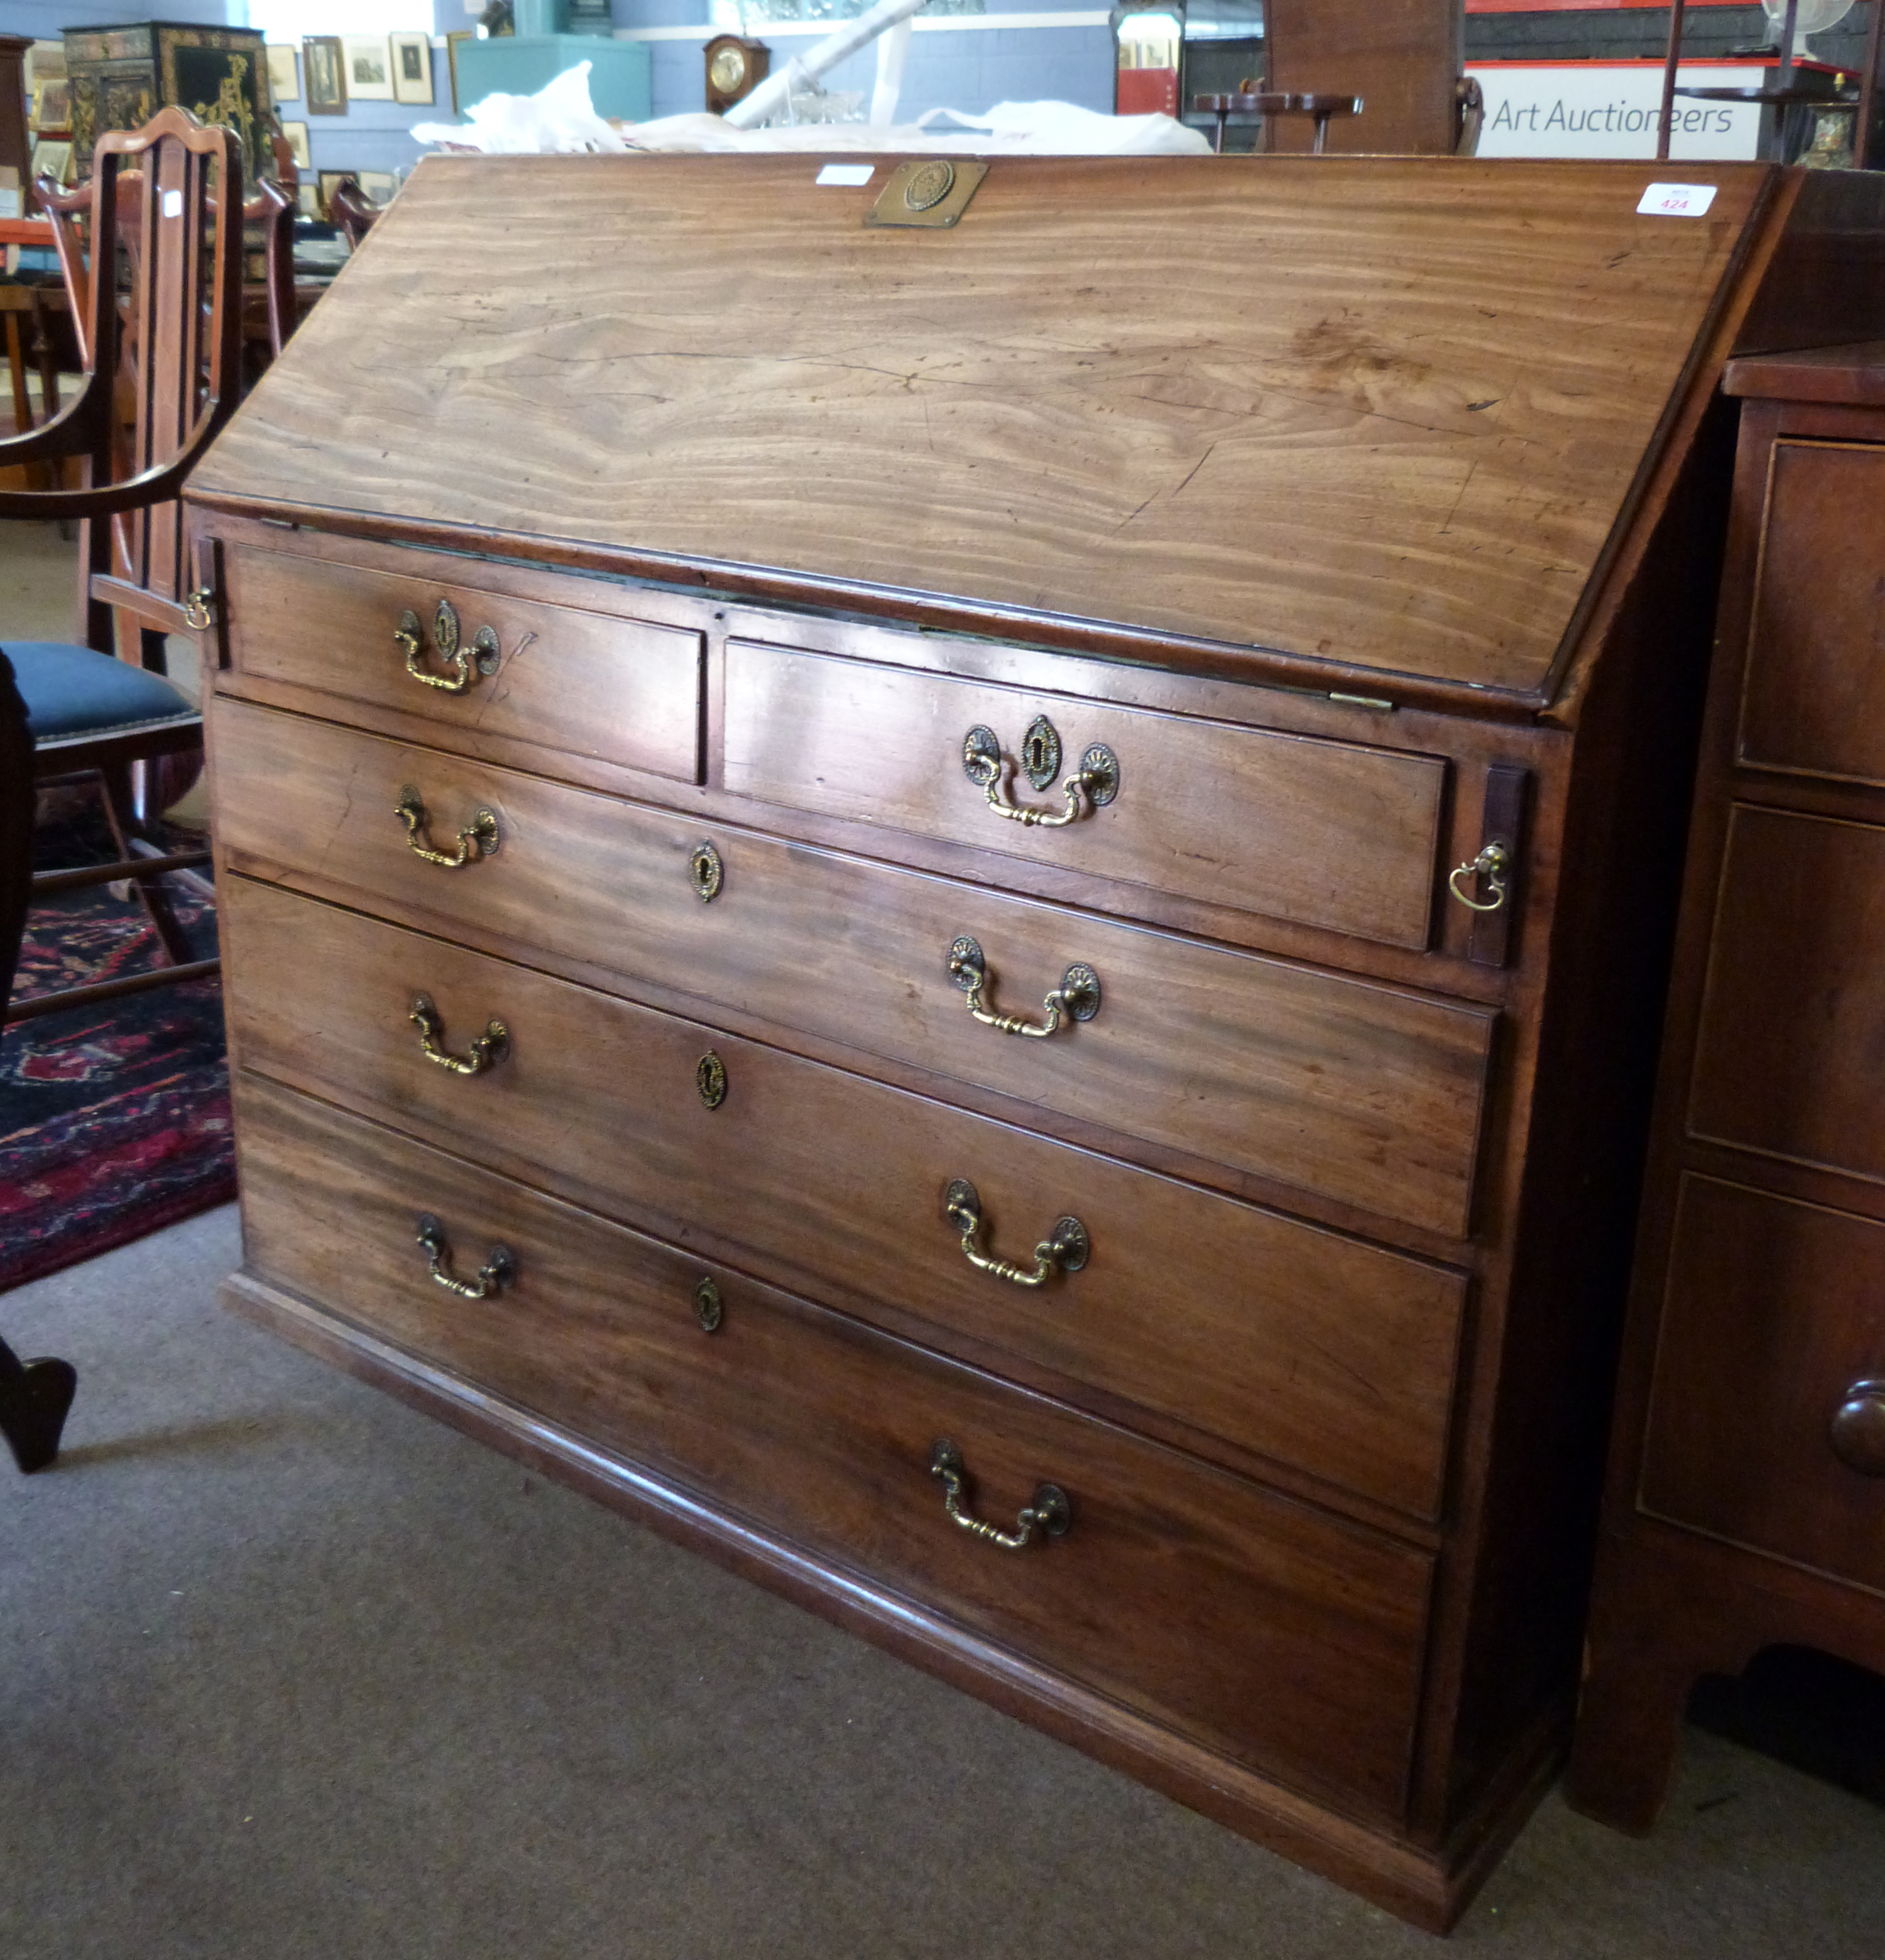 19th century fall front bureau with fitted interior, width approx 115cm - Image 2 of 4